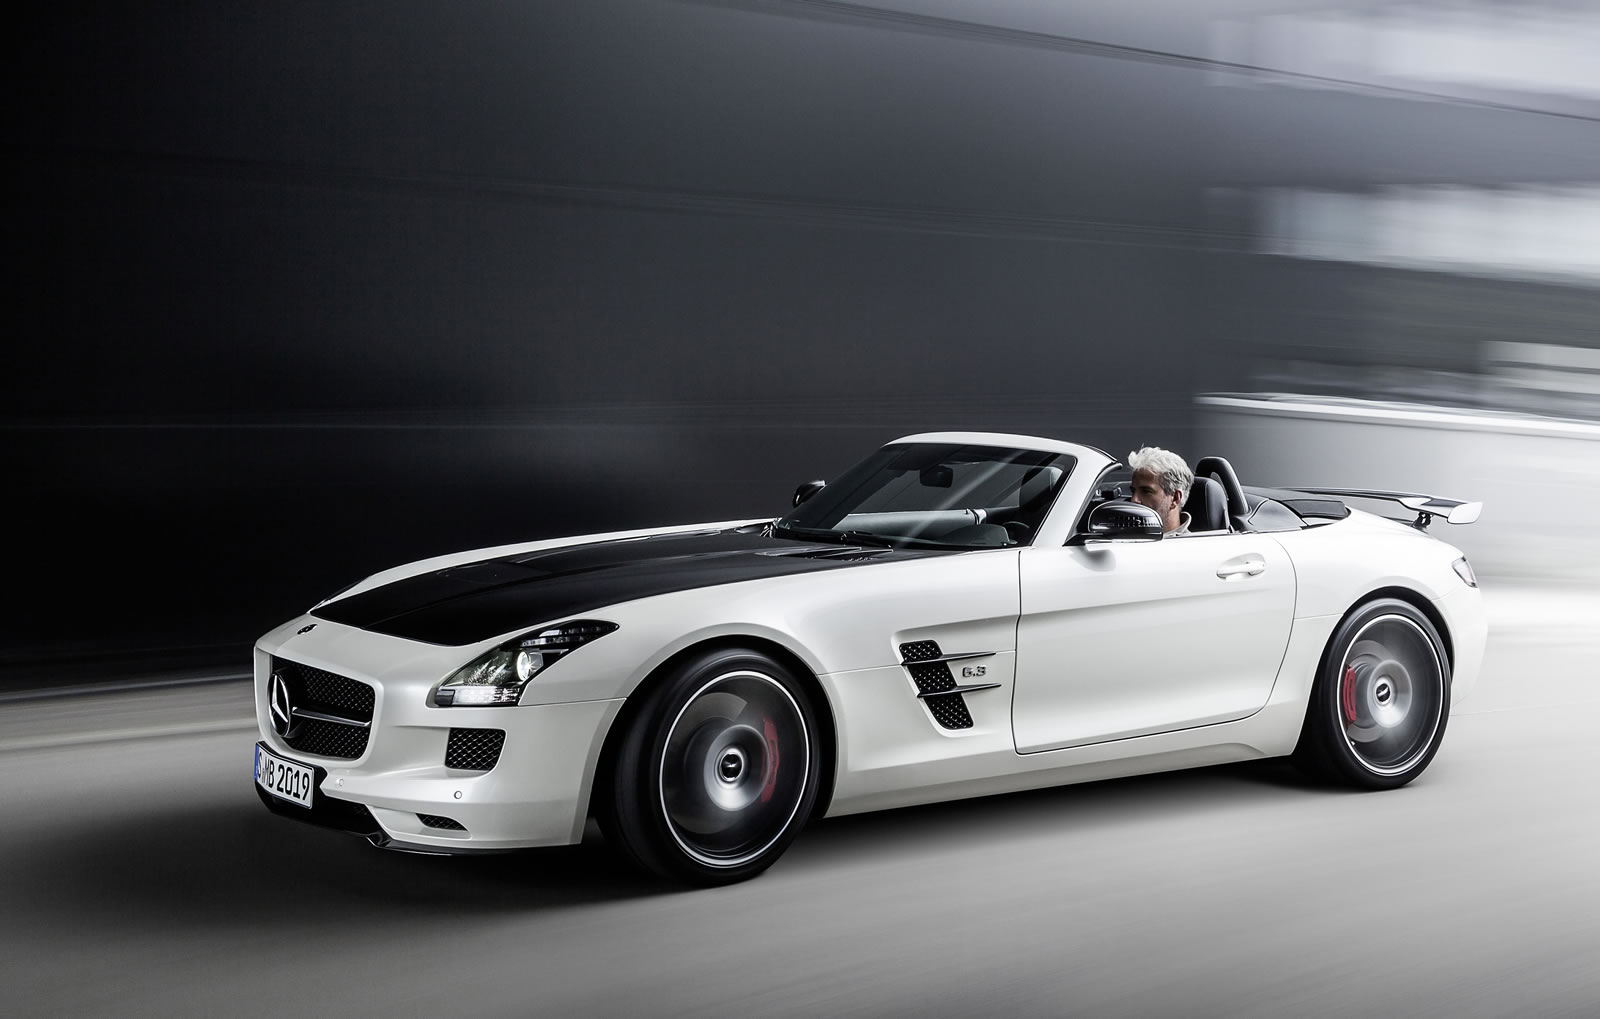 2018 mercedes benz sls amg gt roadster car photos for 2018 mercedes benz amg gt